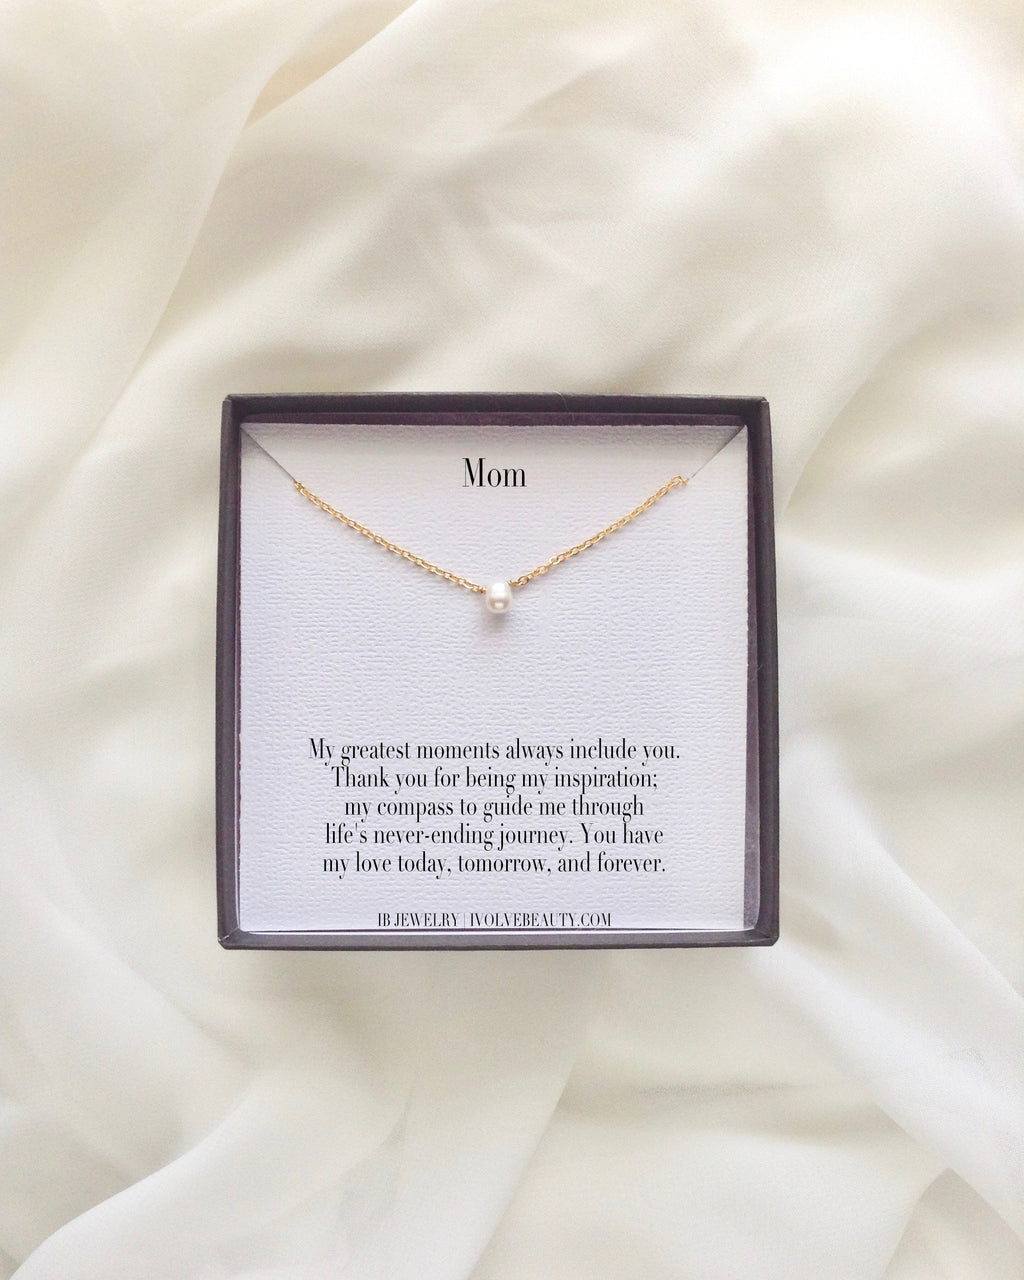 Mom Meaningful Necklace Gift | IB Jewelry